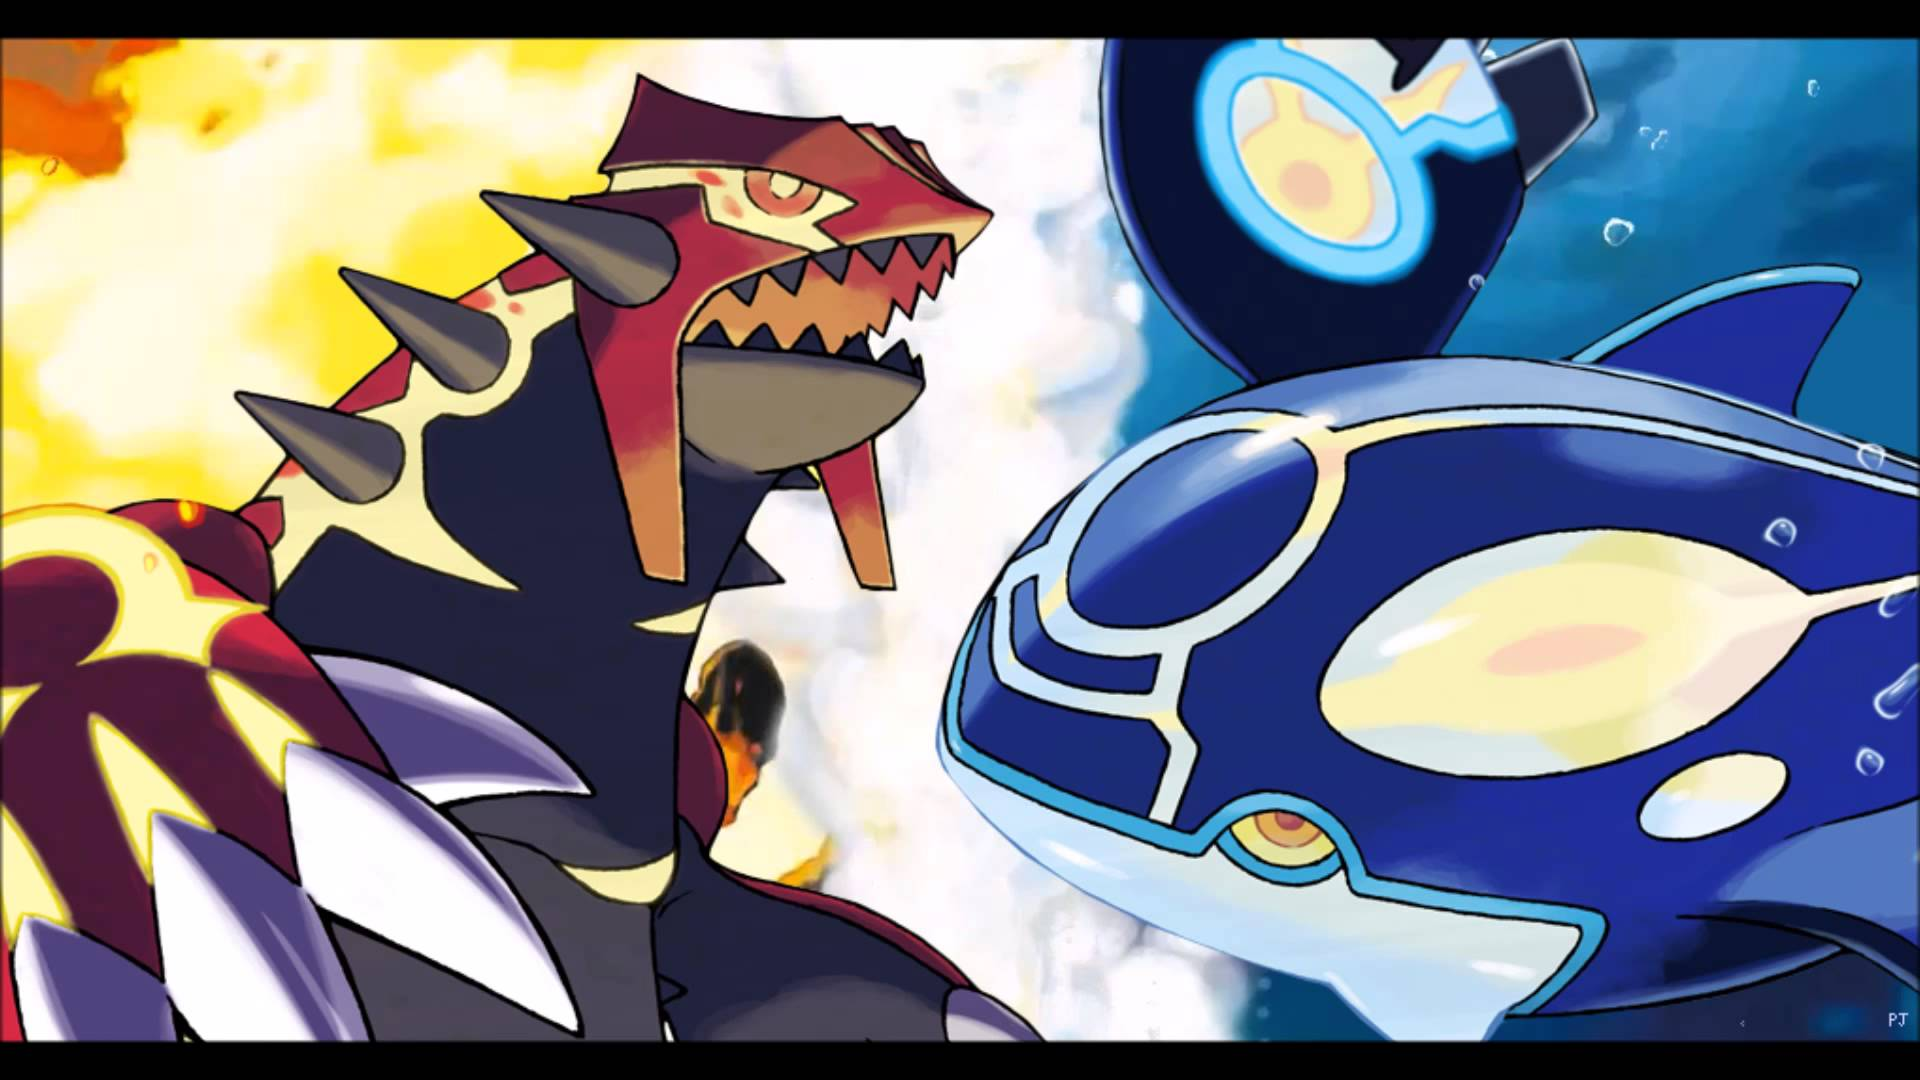 Kyogre Wallpaper 48014 | Best Free Desktop HD Wallpapers